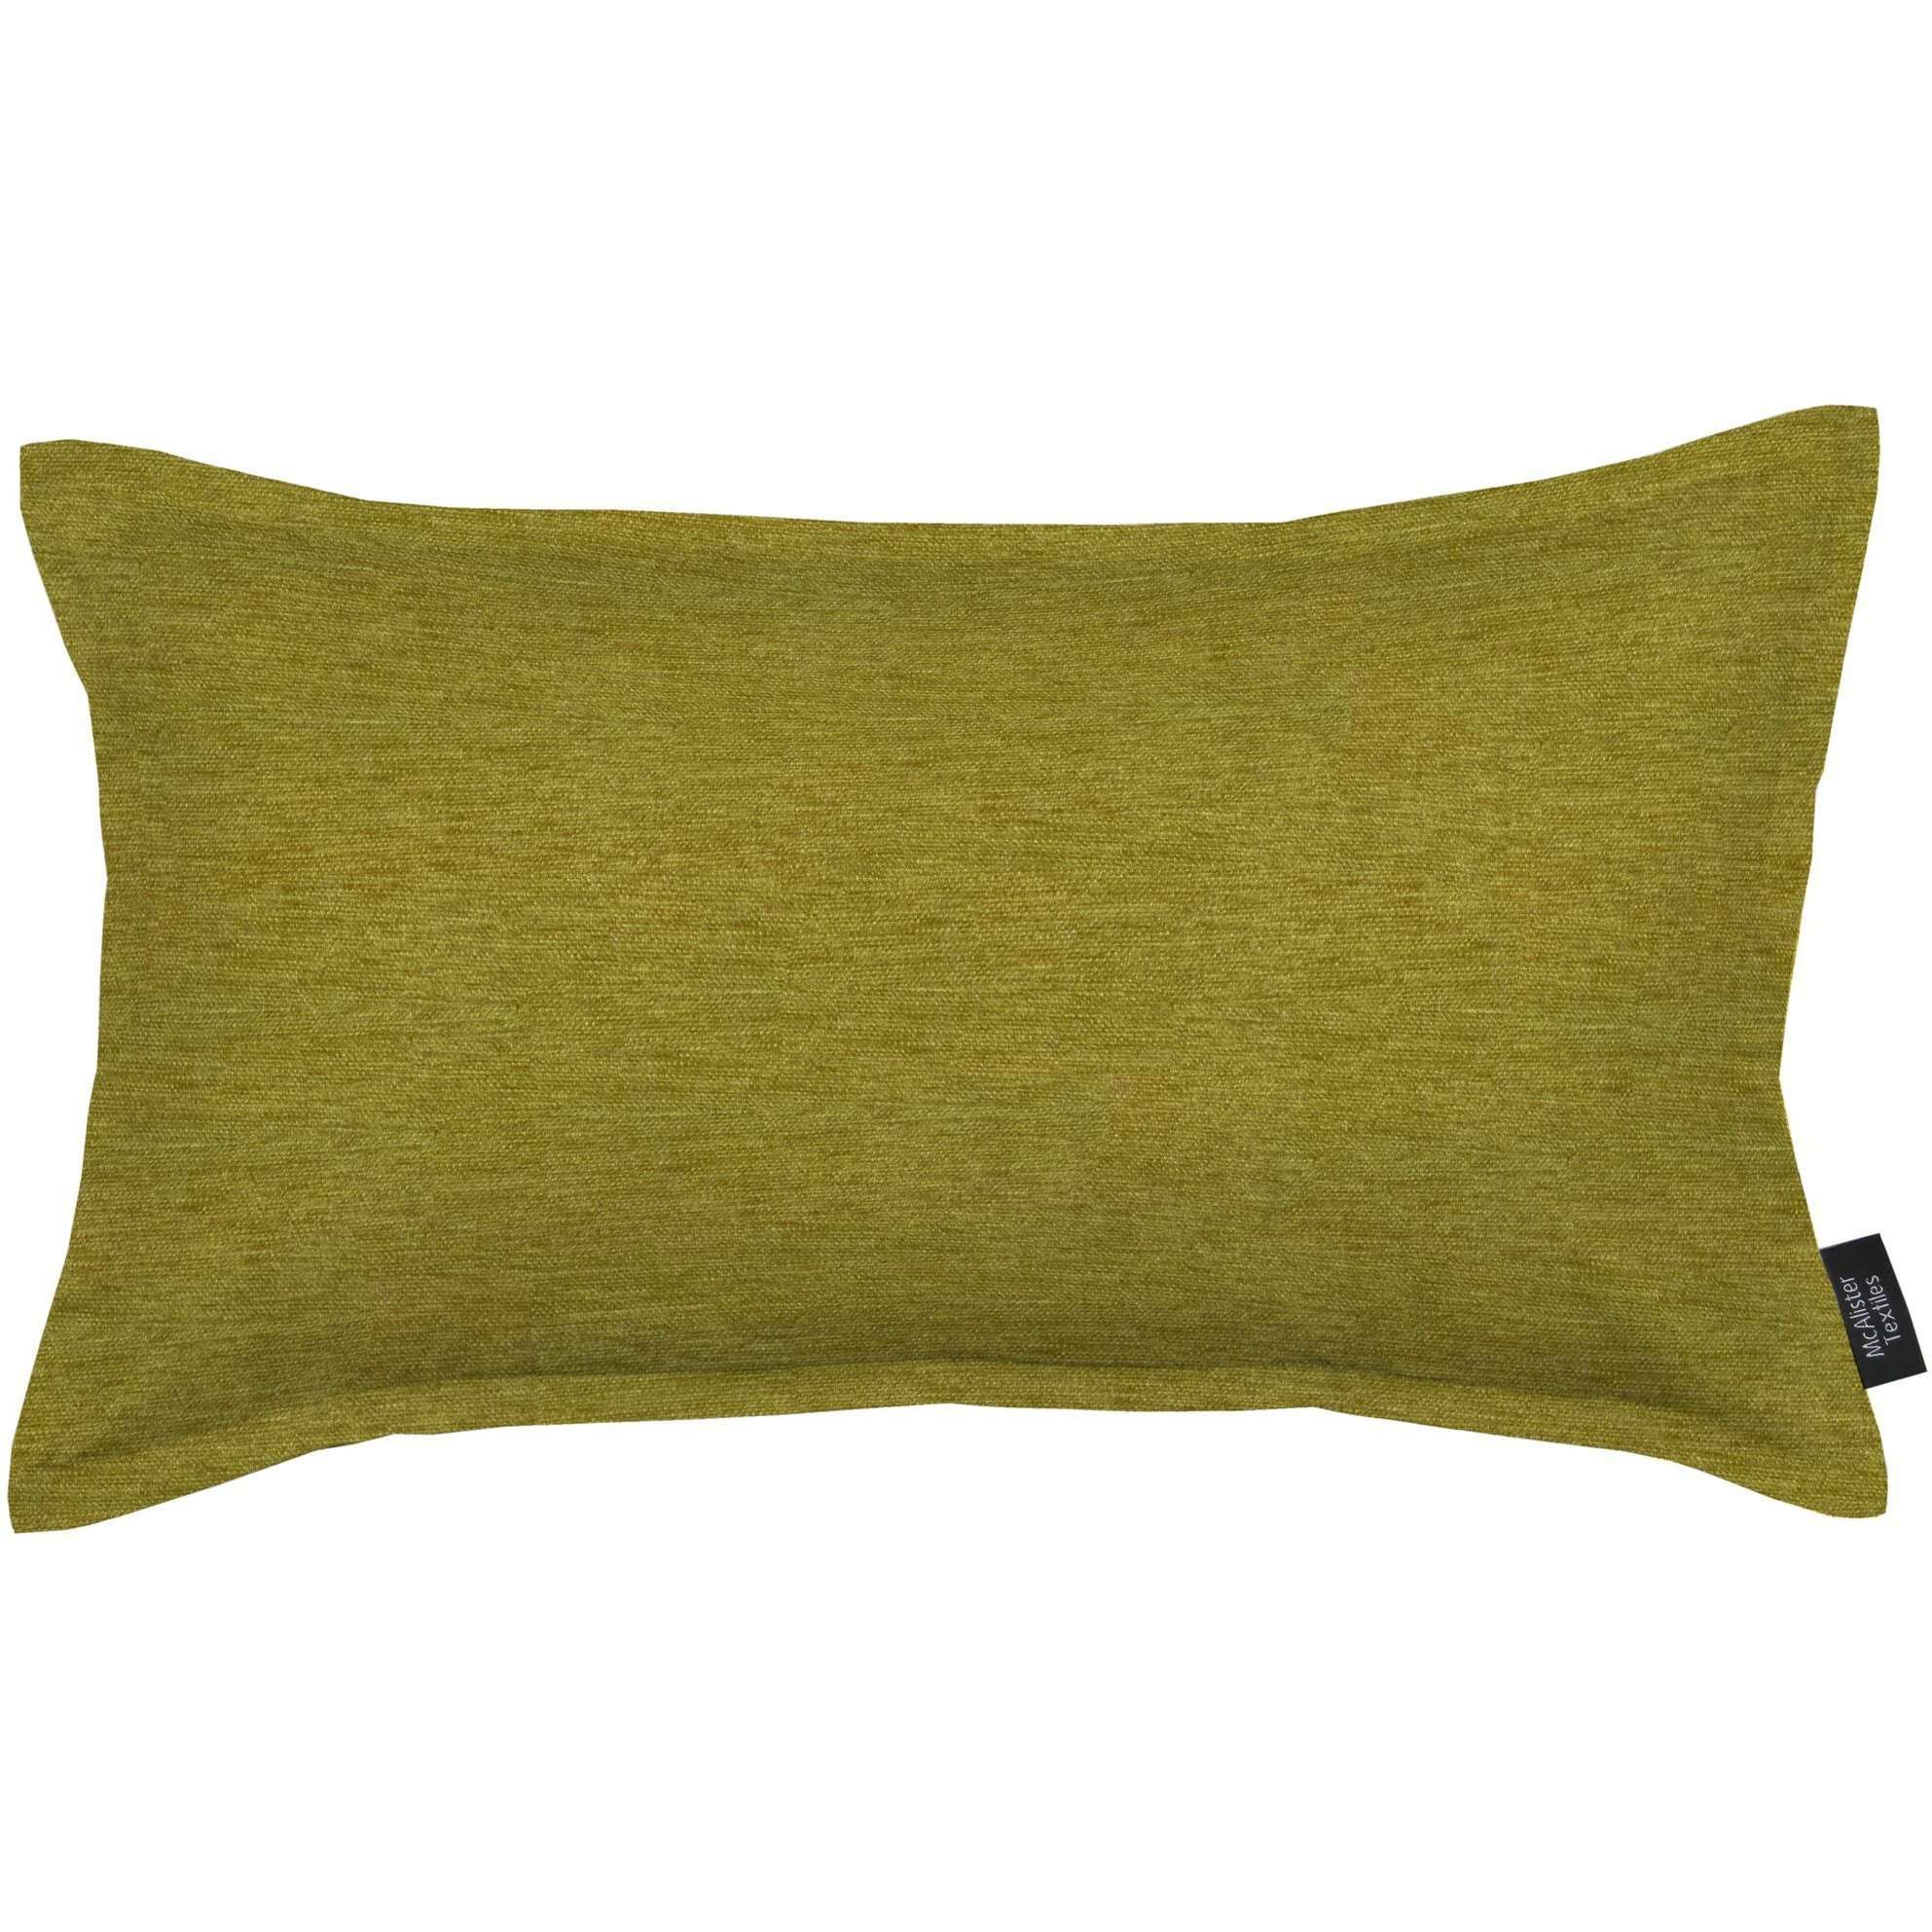 McAlister Textiles Plain Chenille Lime Green Cushion Cushions and Covers Polyester Filler 60cm x 40cm